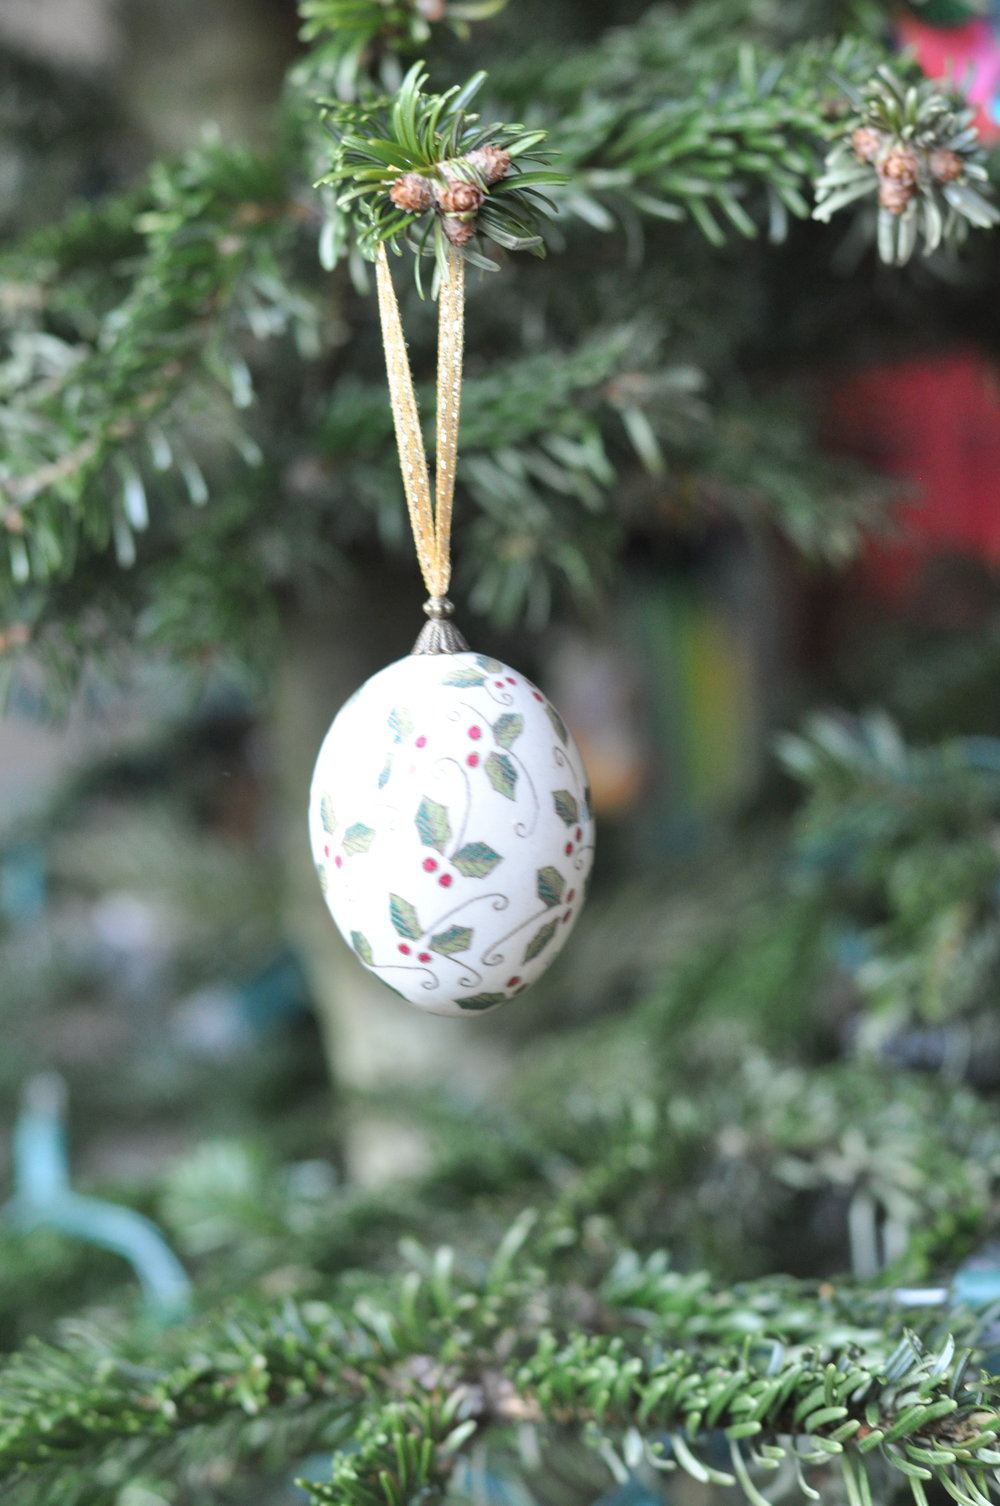 Philippine painted egg Christmas ornament